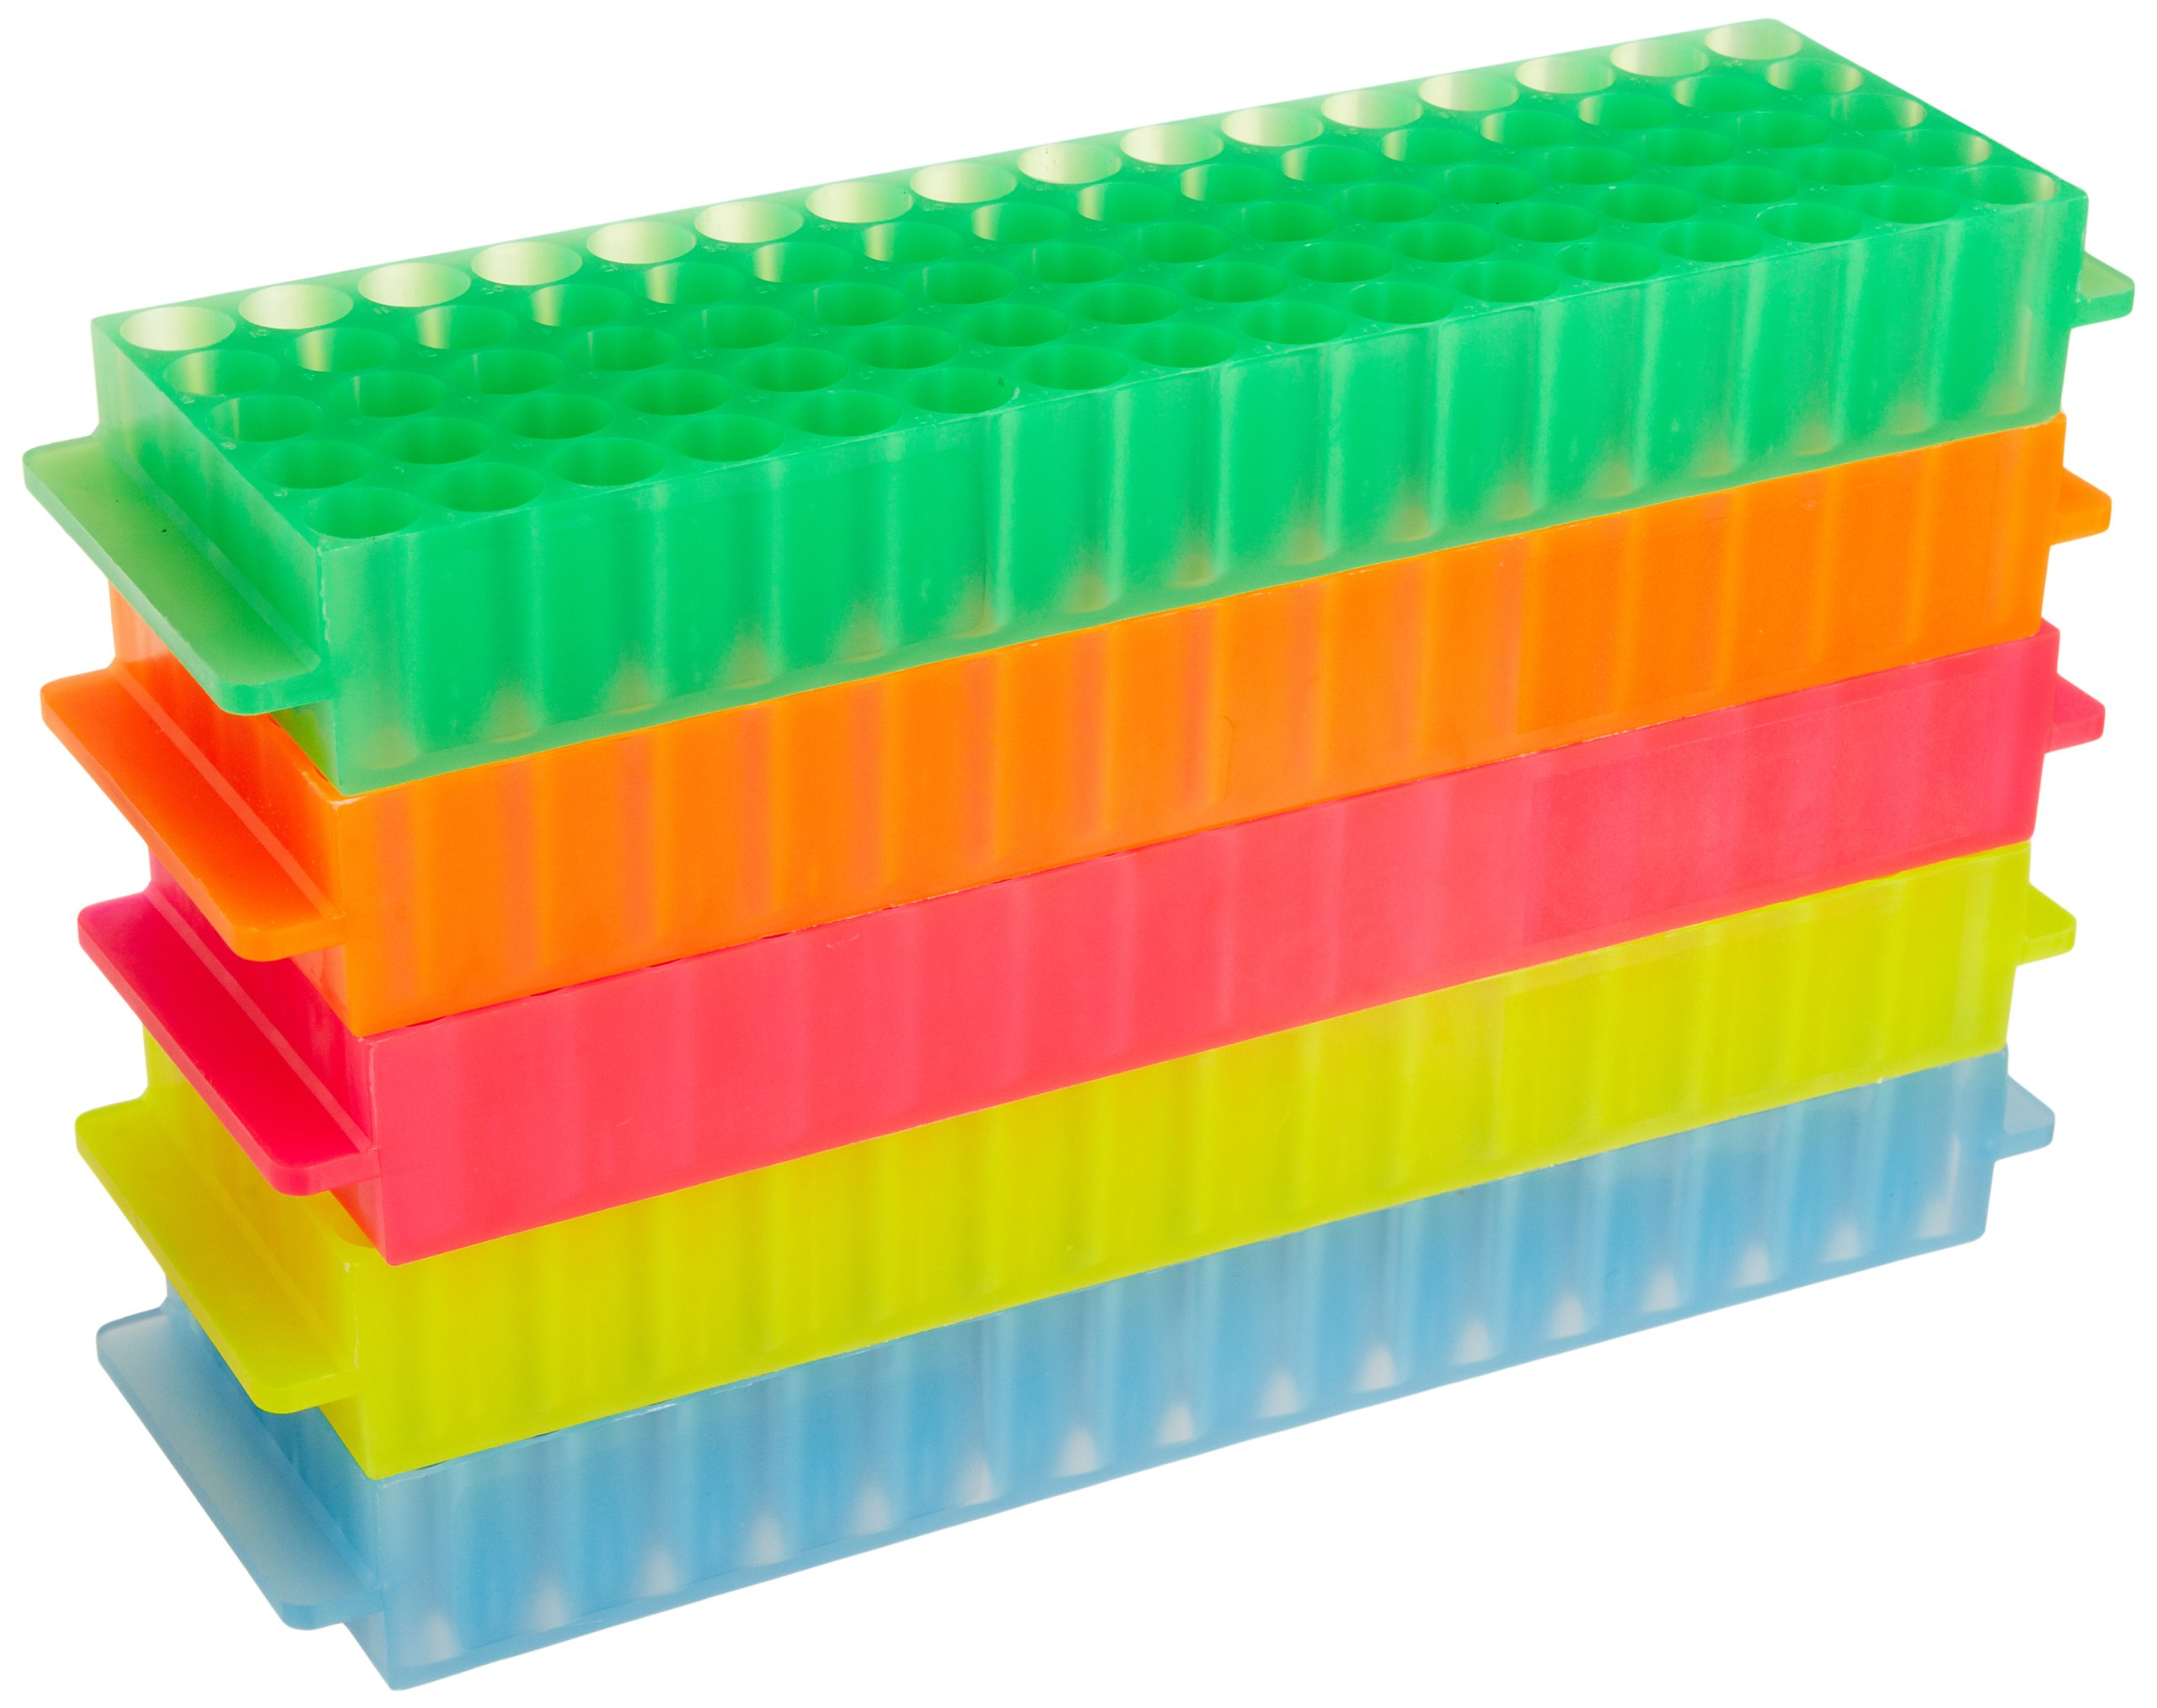 Bio Plas 0061 Polypropylene 80 Well Microcentrifuge Tube Rack, Autoclavable, Assorted (Pack of 5) by Bio Plas